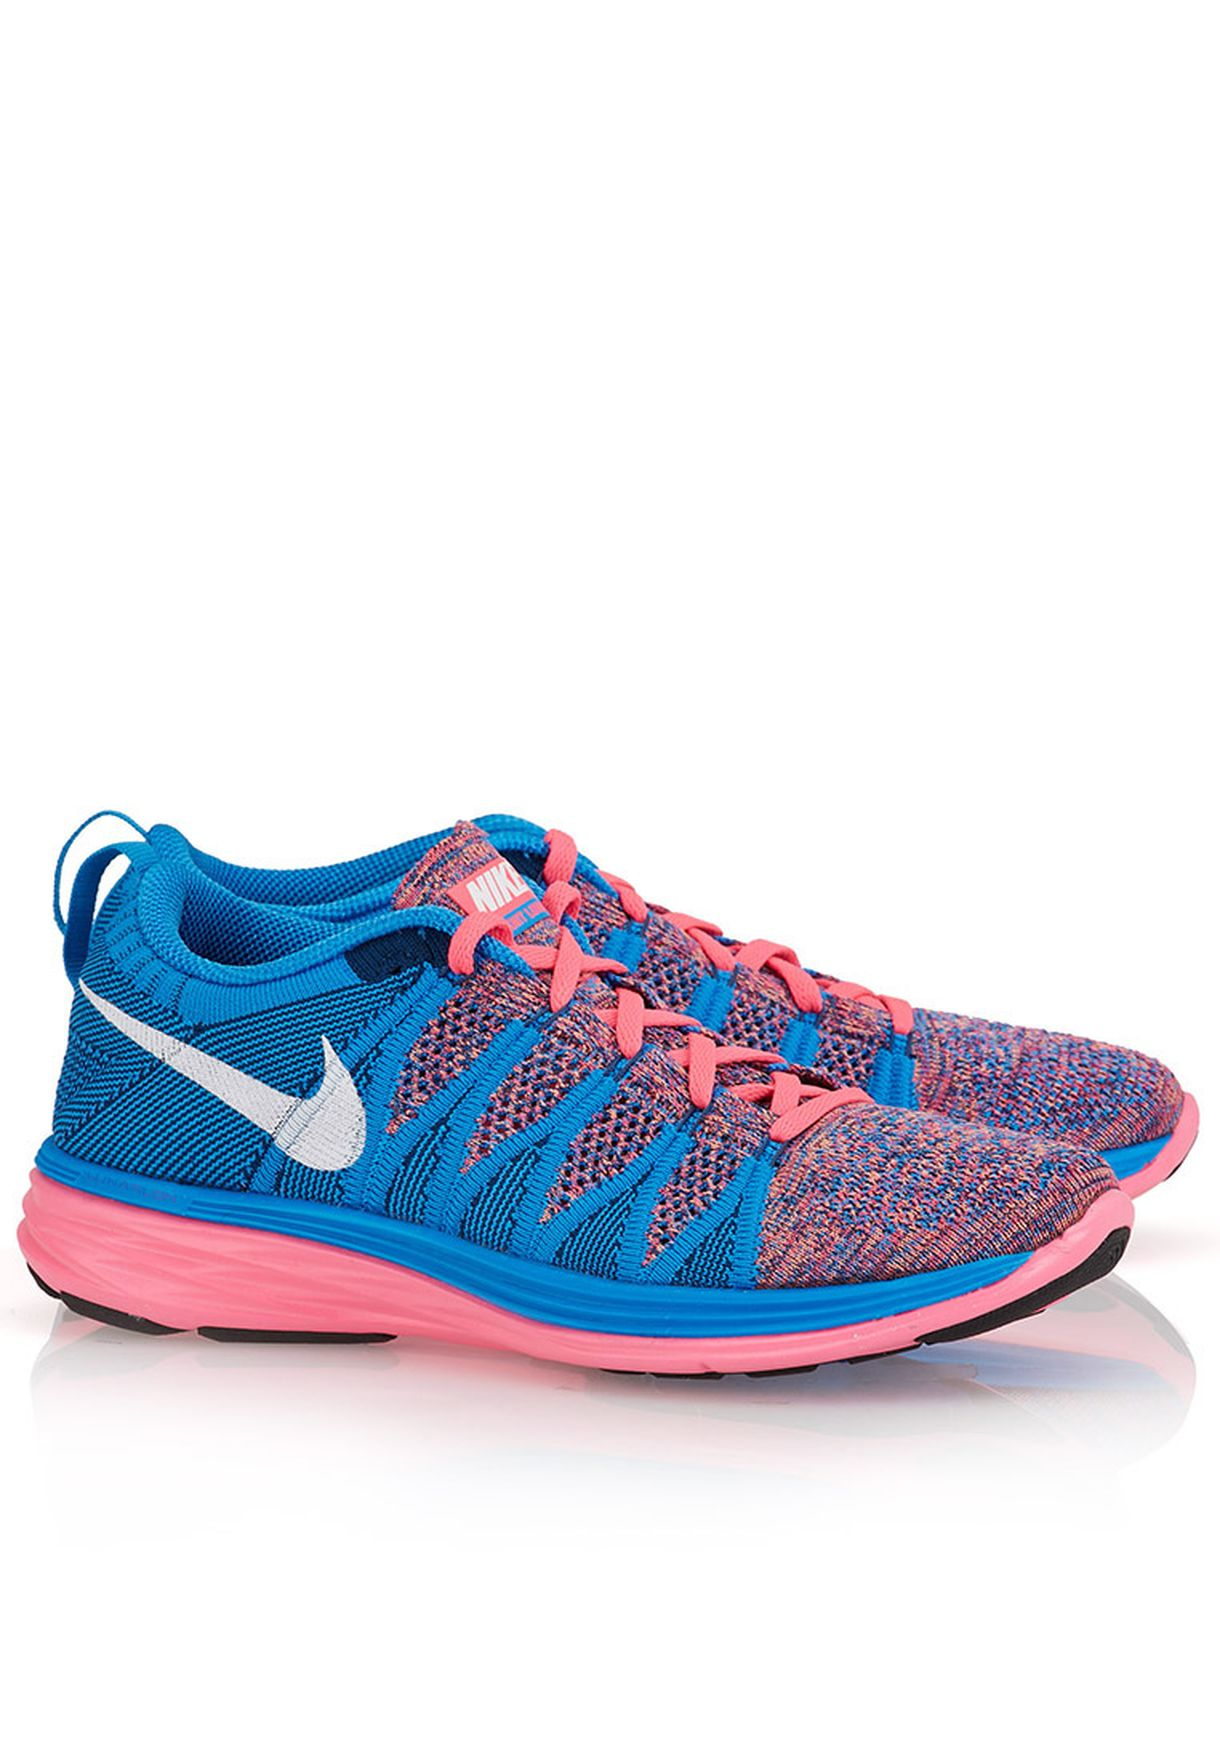 Basura muy agradable  Buy Nike multicolor Flyknit Lunar 2 for Women in Muscat, other cities |  620658-602